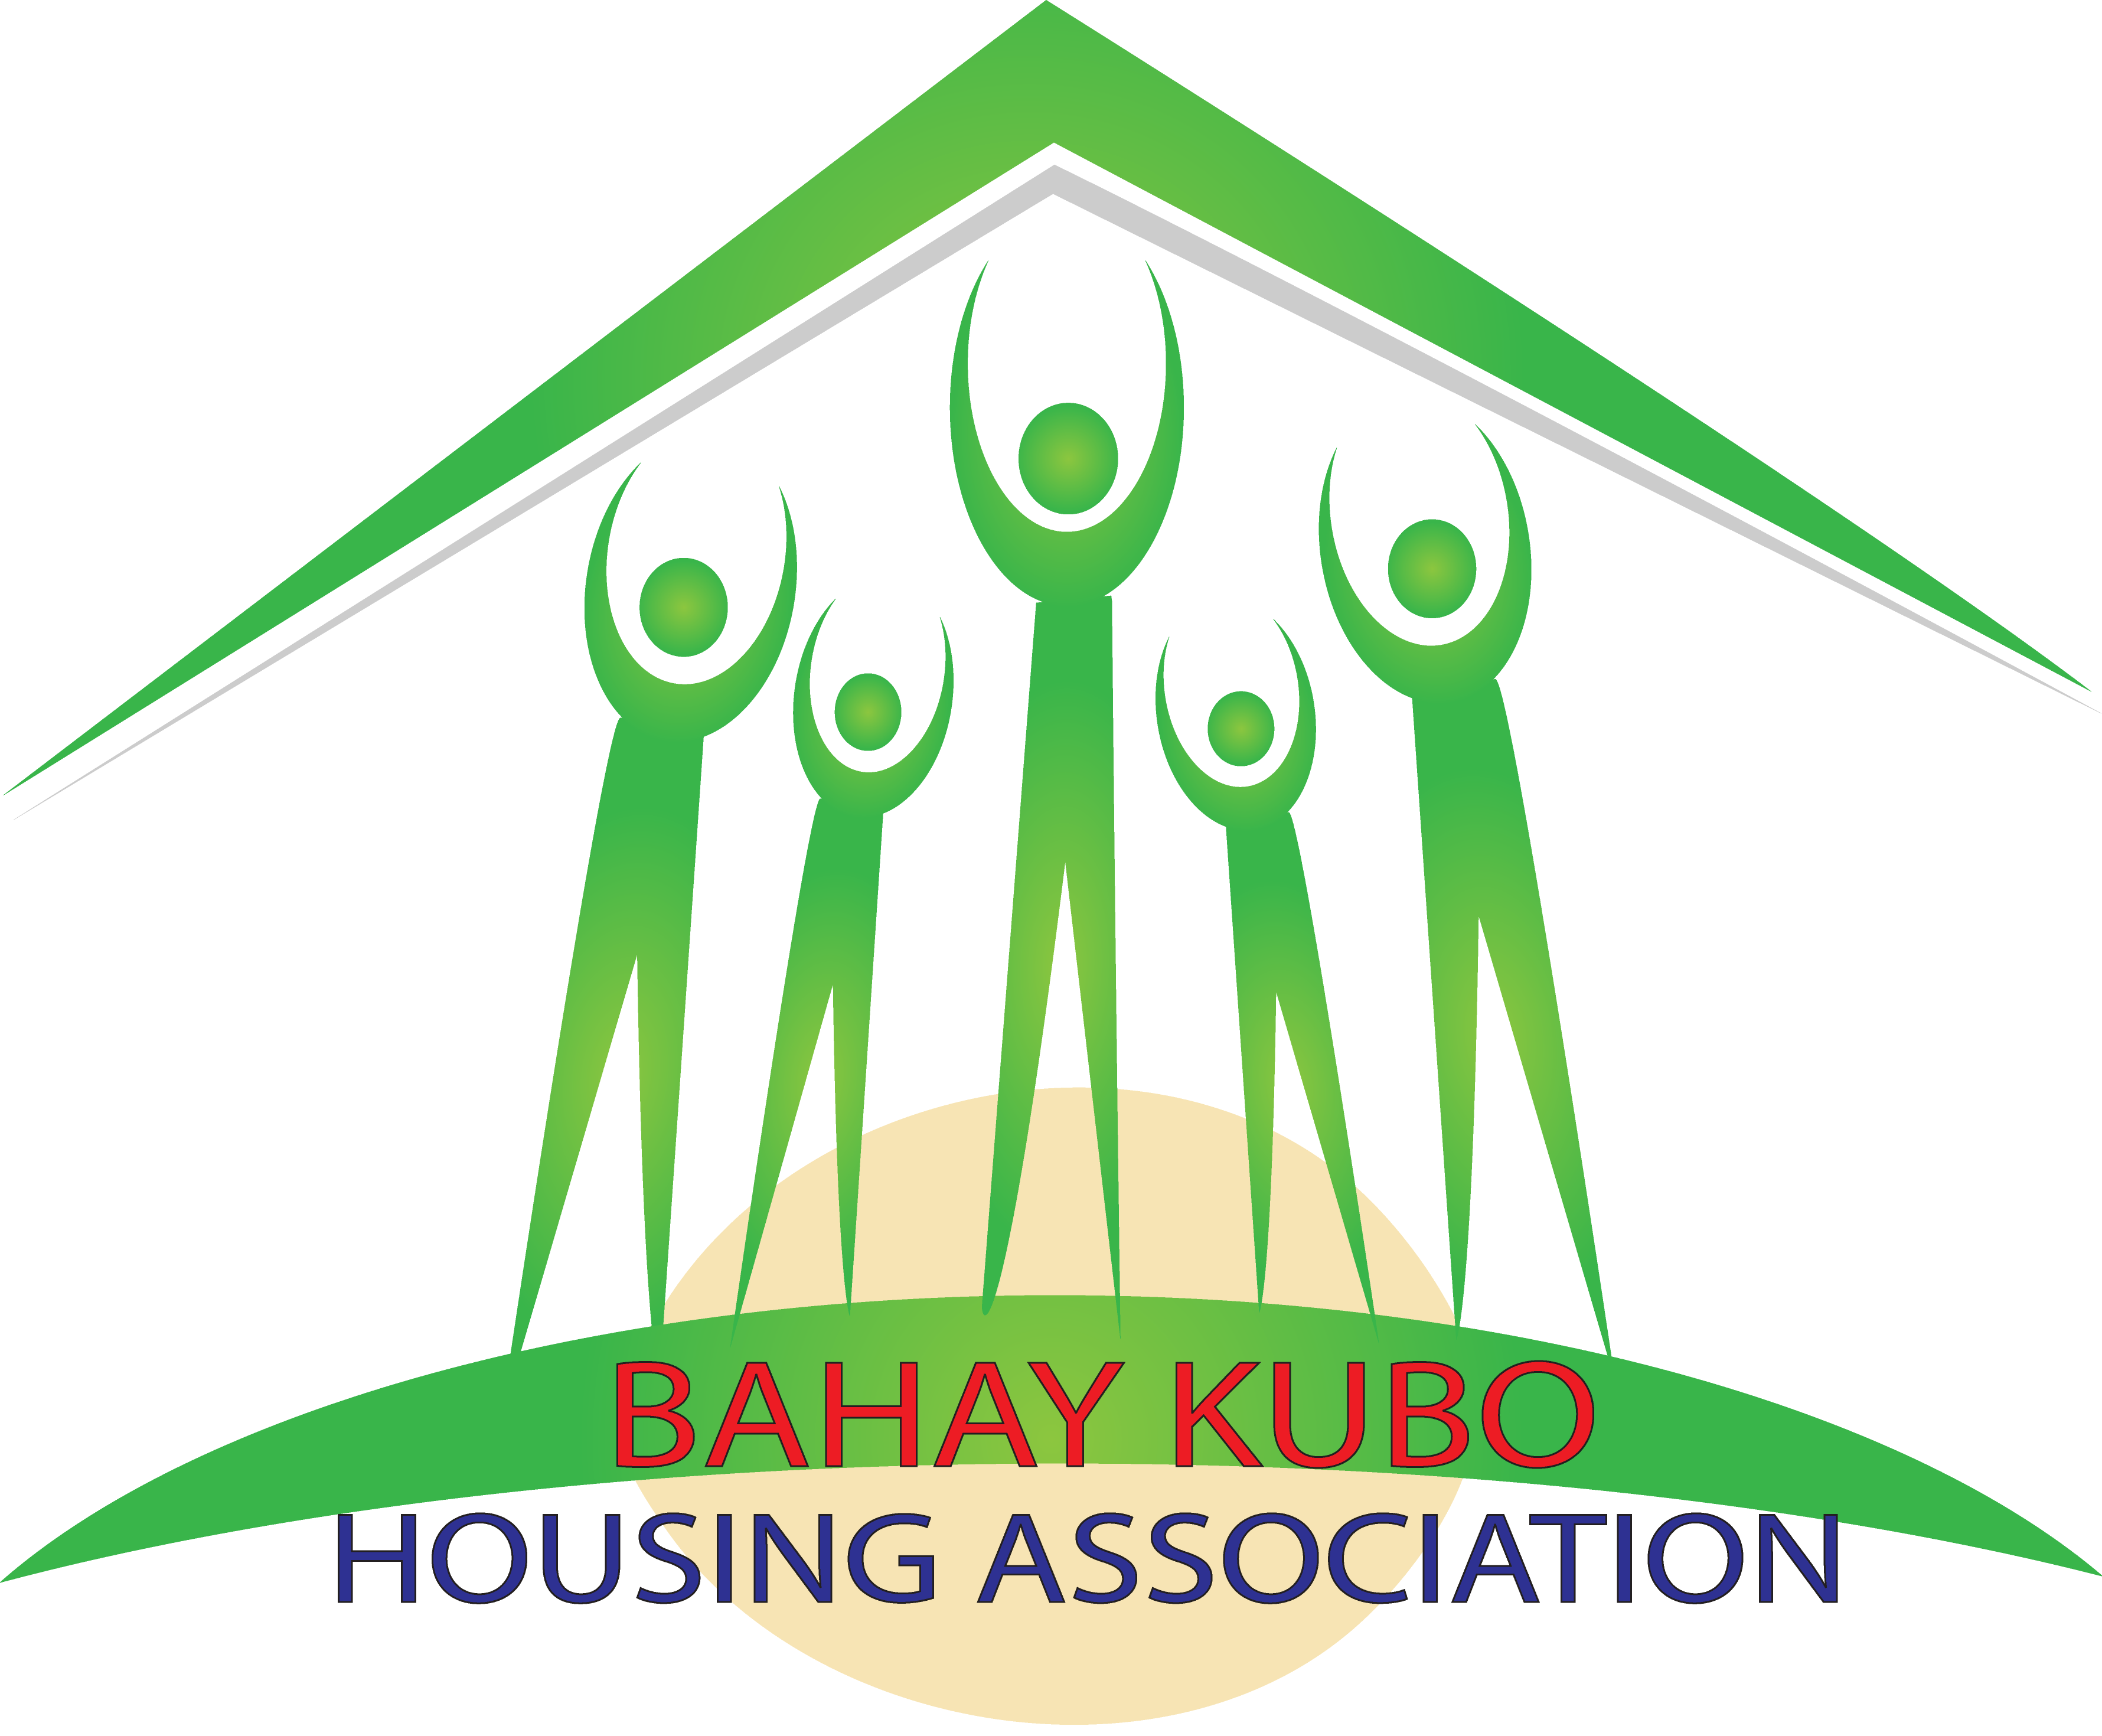 Bahay Kubo Housing Association logo